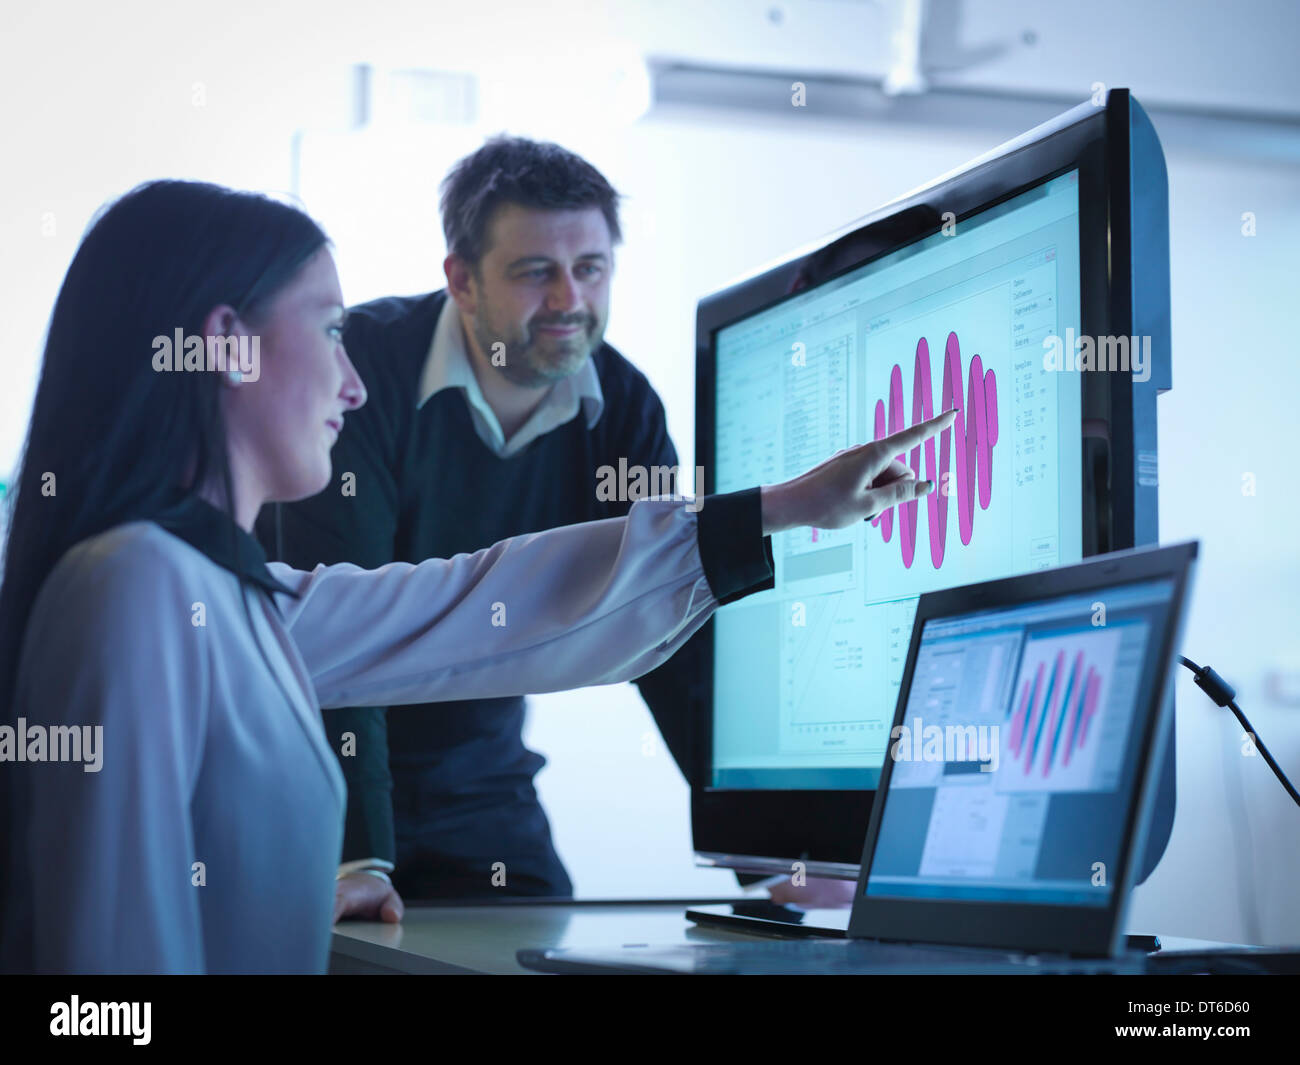 Workers using software to calibrate springs in office - Stock Image